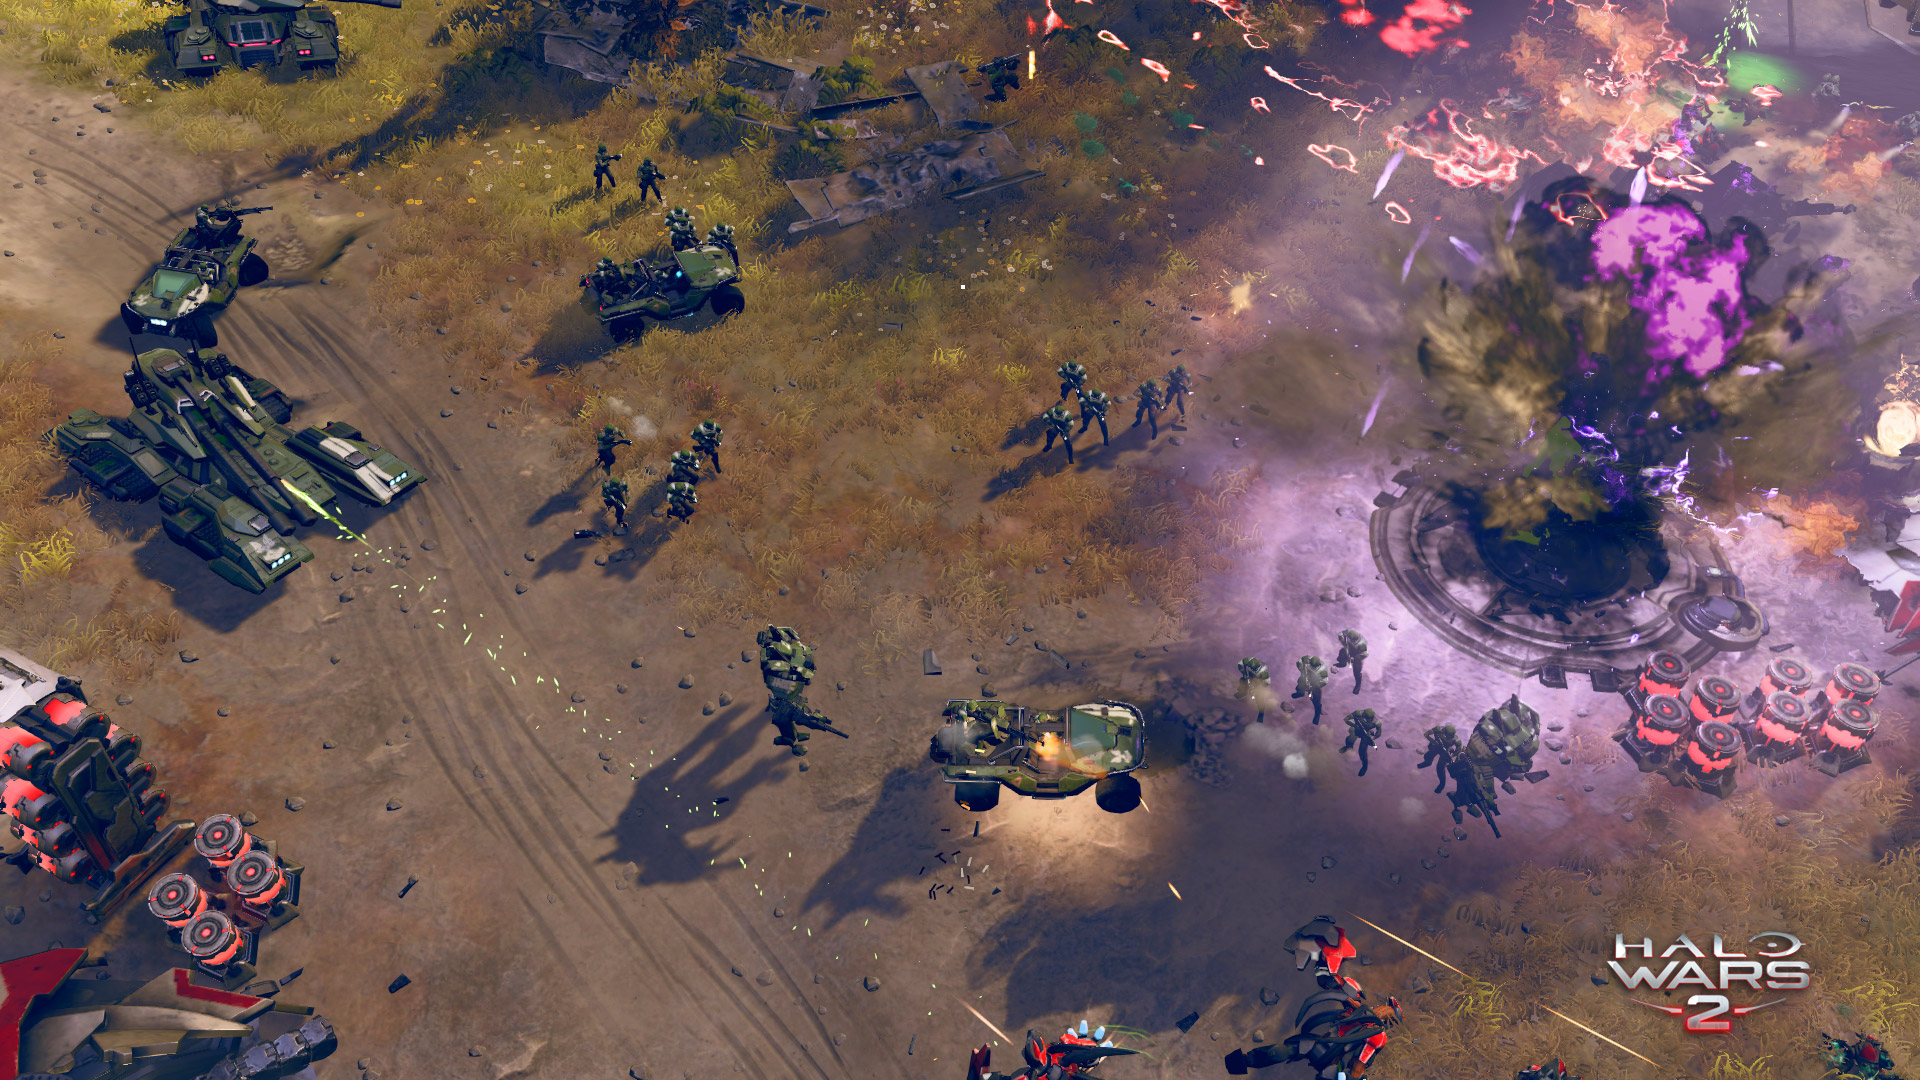 Halo Wars 2 - In-game 2